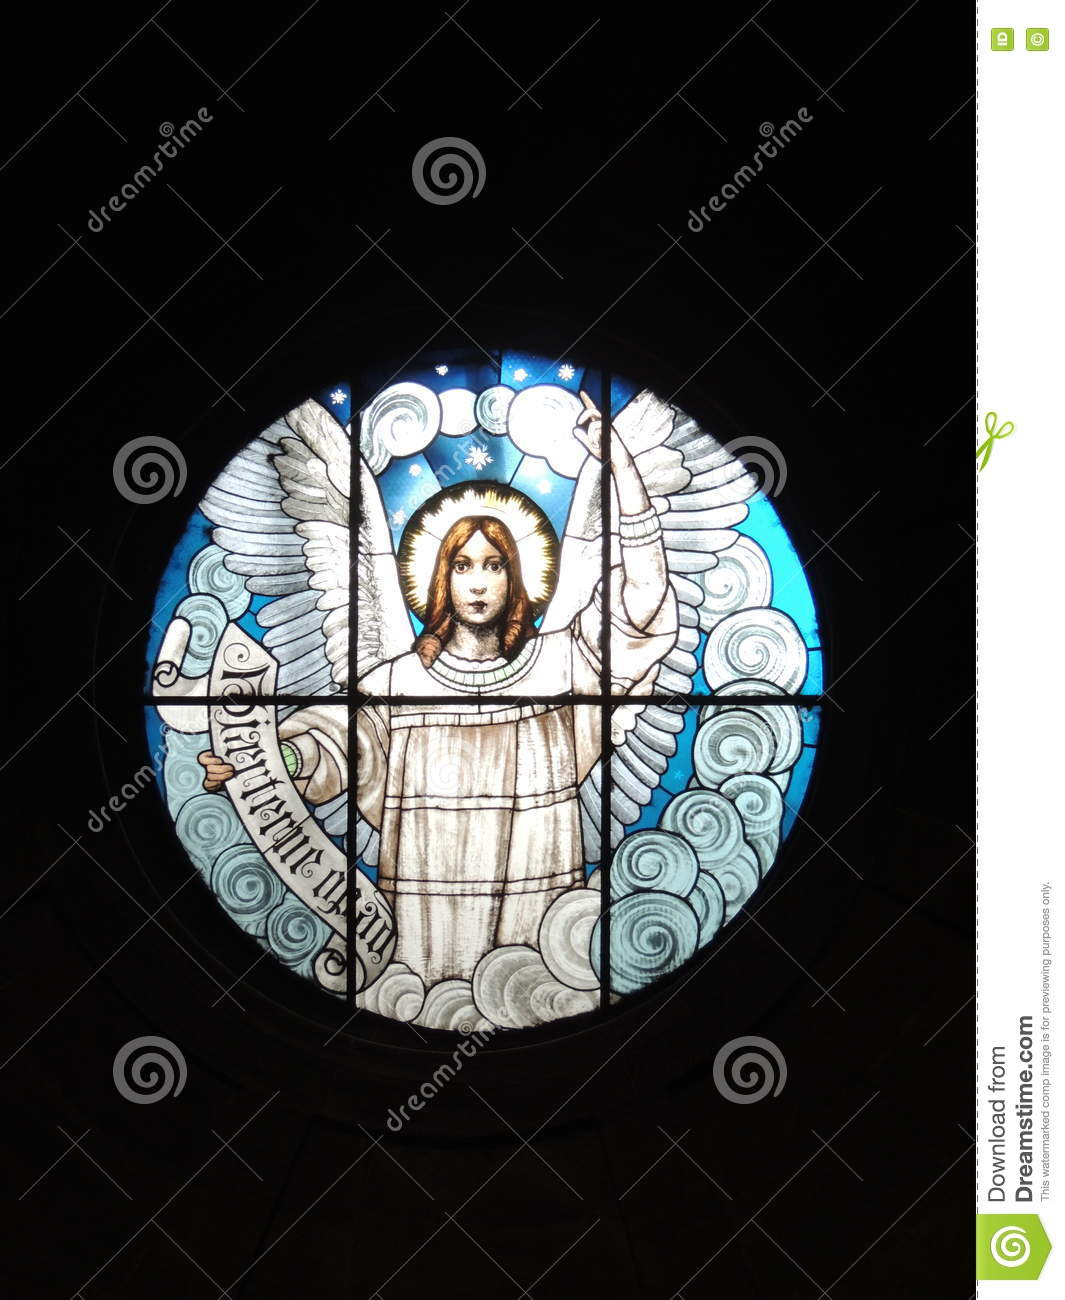 Stained glass window depicting an angel